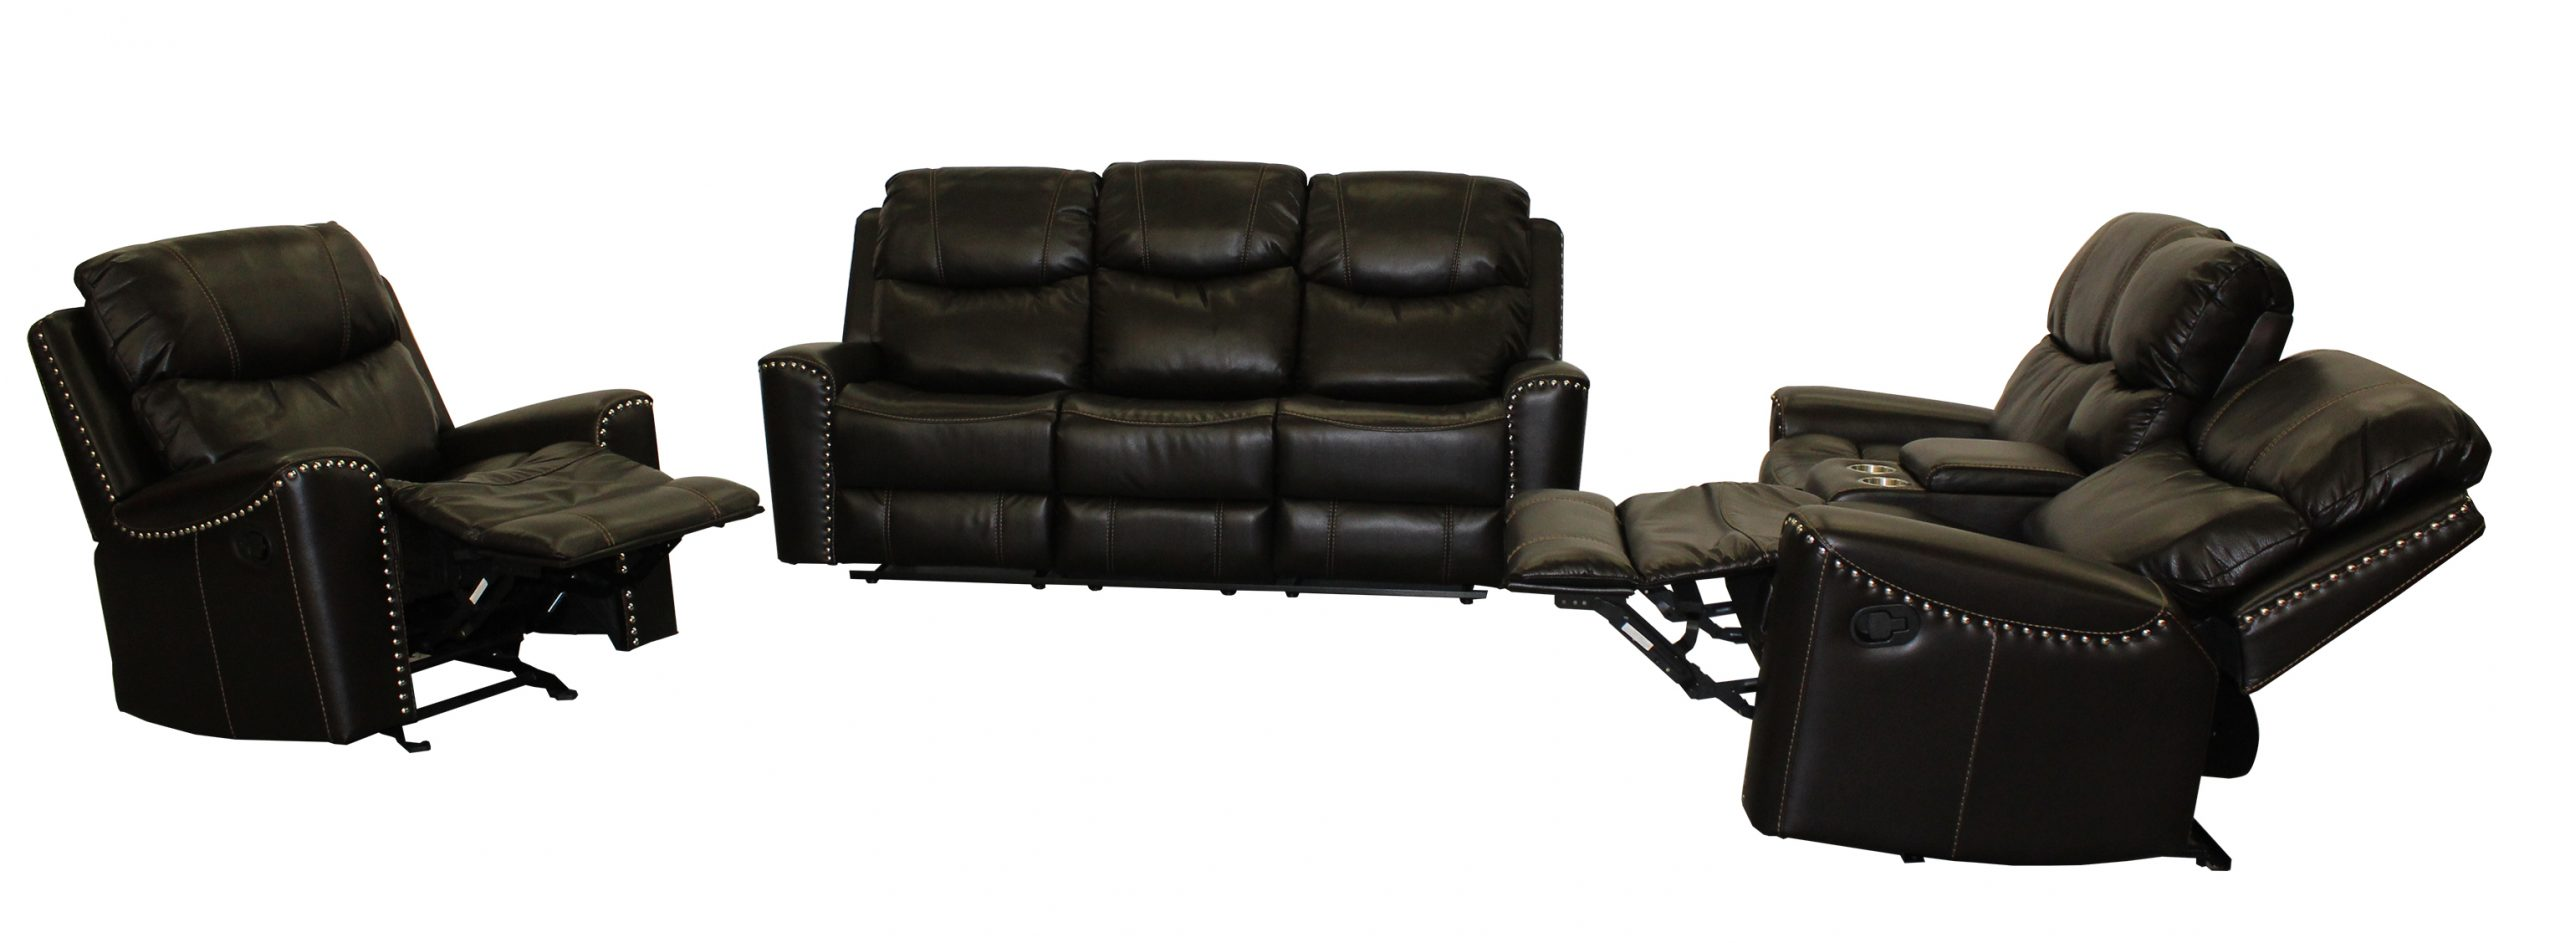 LOUNGE SUITE BRADFORD 3 PIECE BRAND NEW FOR ONLY R22999!!!